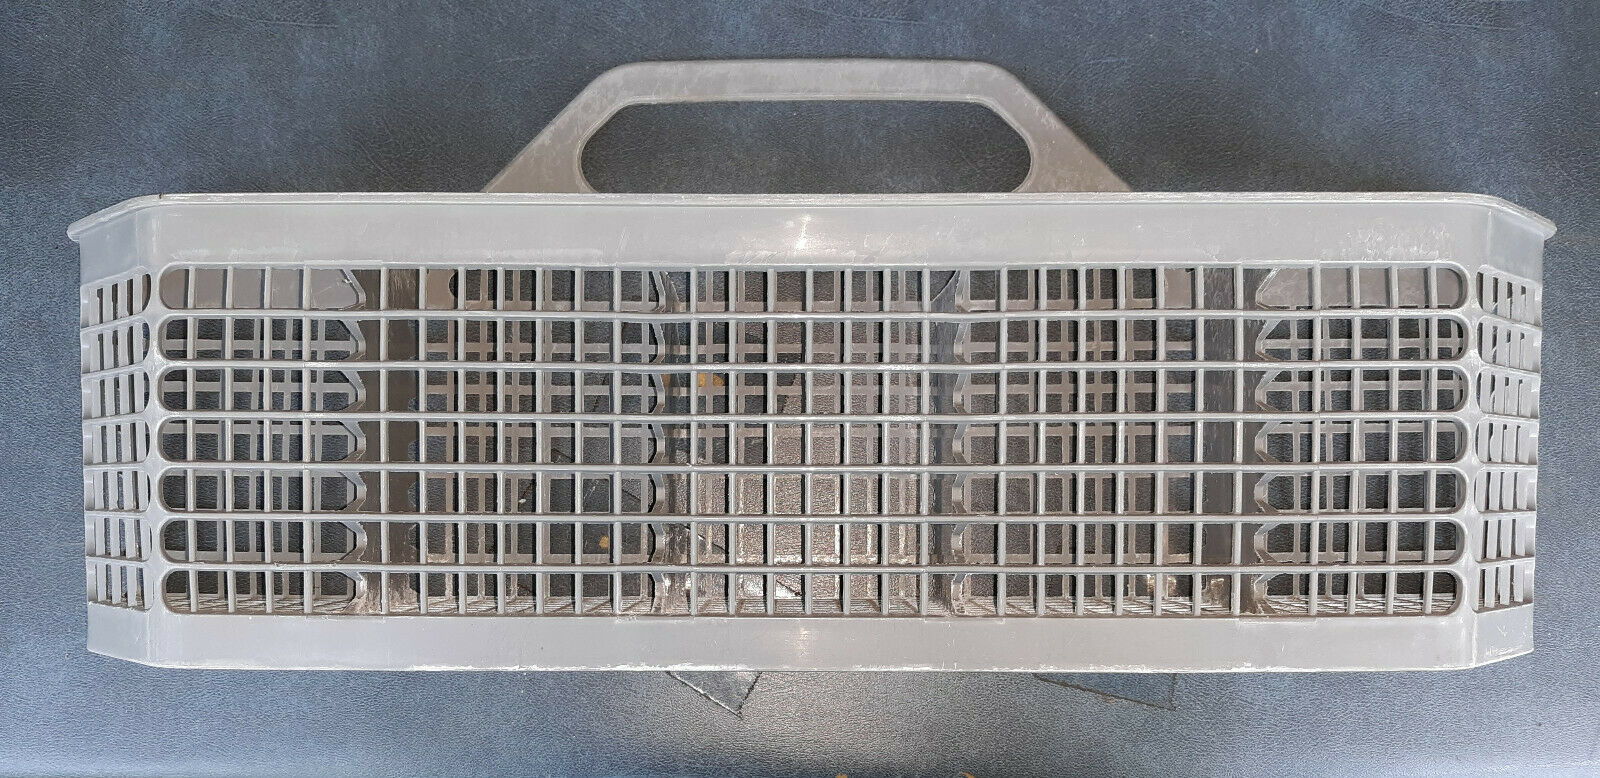 "Primary image for 20MM70 GE DISHWASHER GDWT260R10SS PARTS: UTENSIL BASKET, 19-3/4"" X 8-1/2"" X 4"""